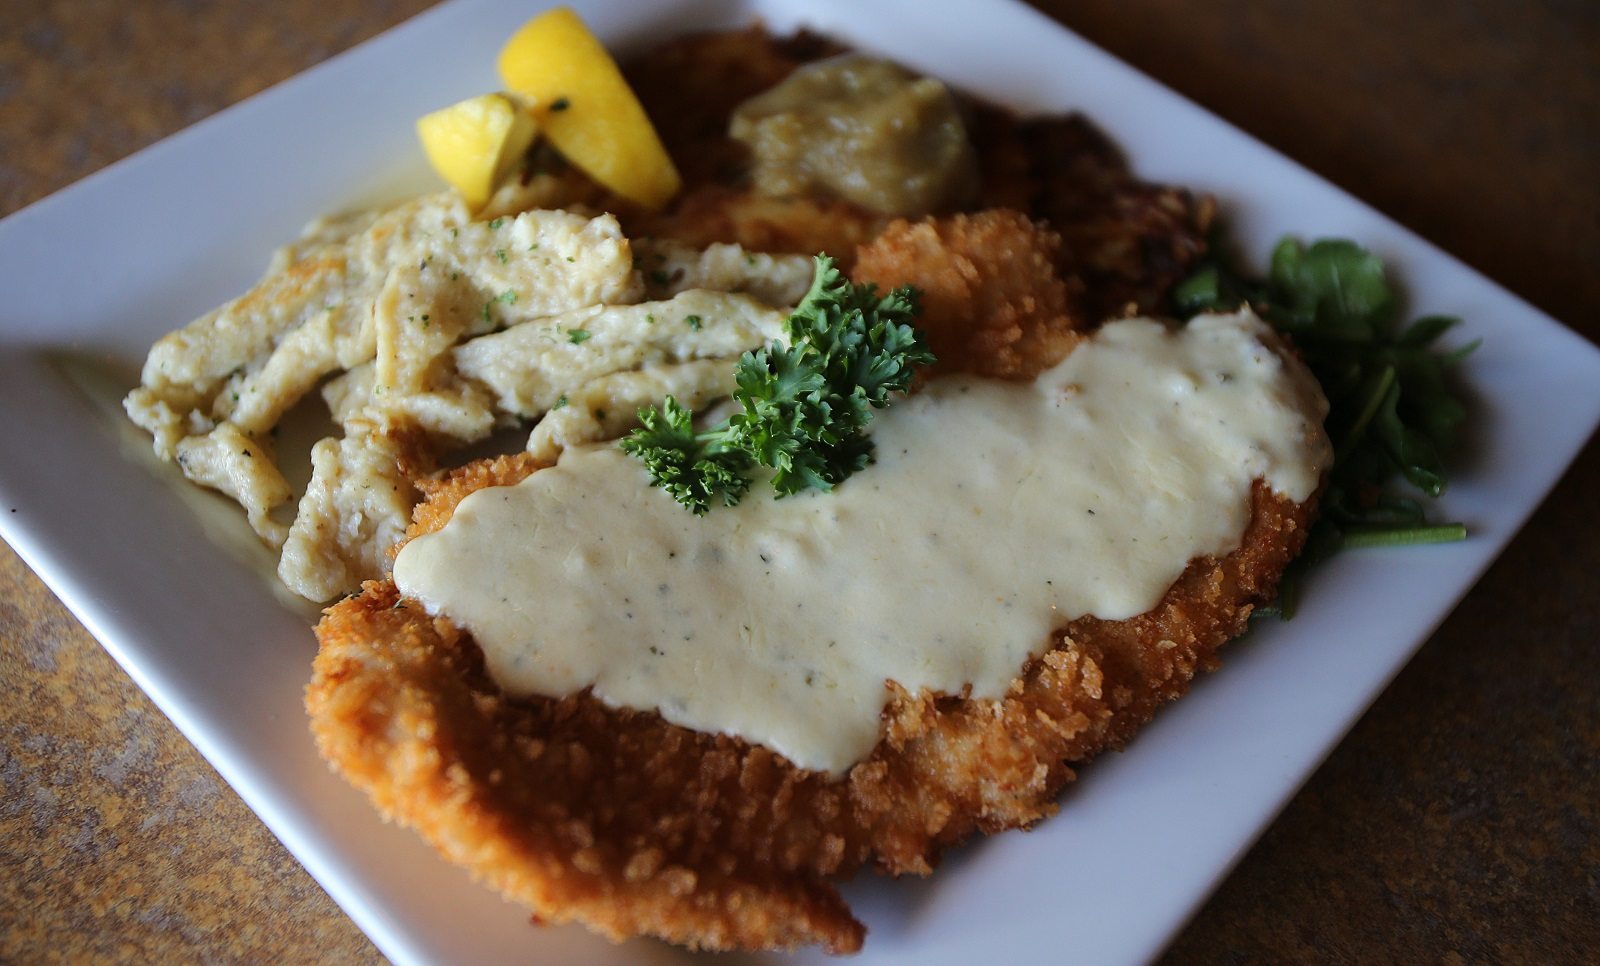 The Chicken Schnitzel from Schnitzel & Co. in Amherst, pictured in 2014. (Buffalo News file photo)